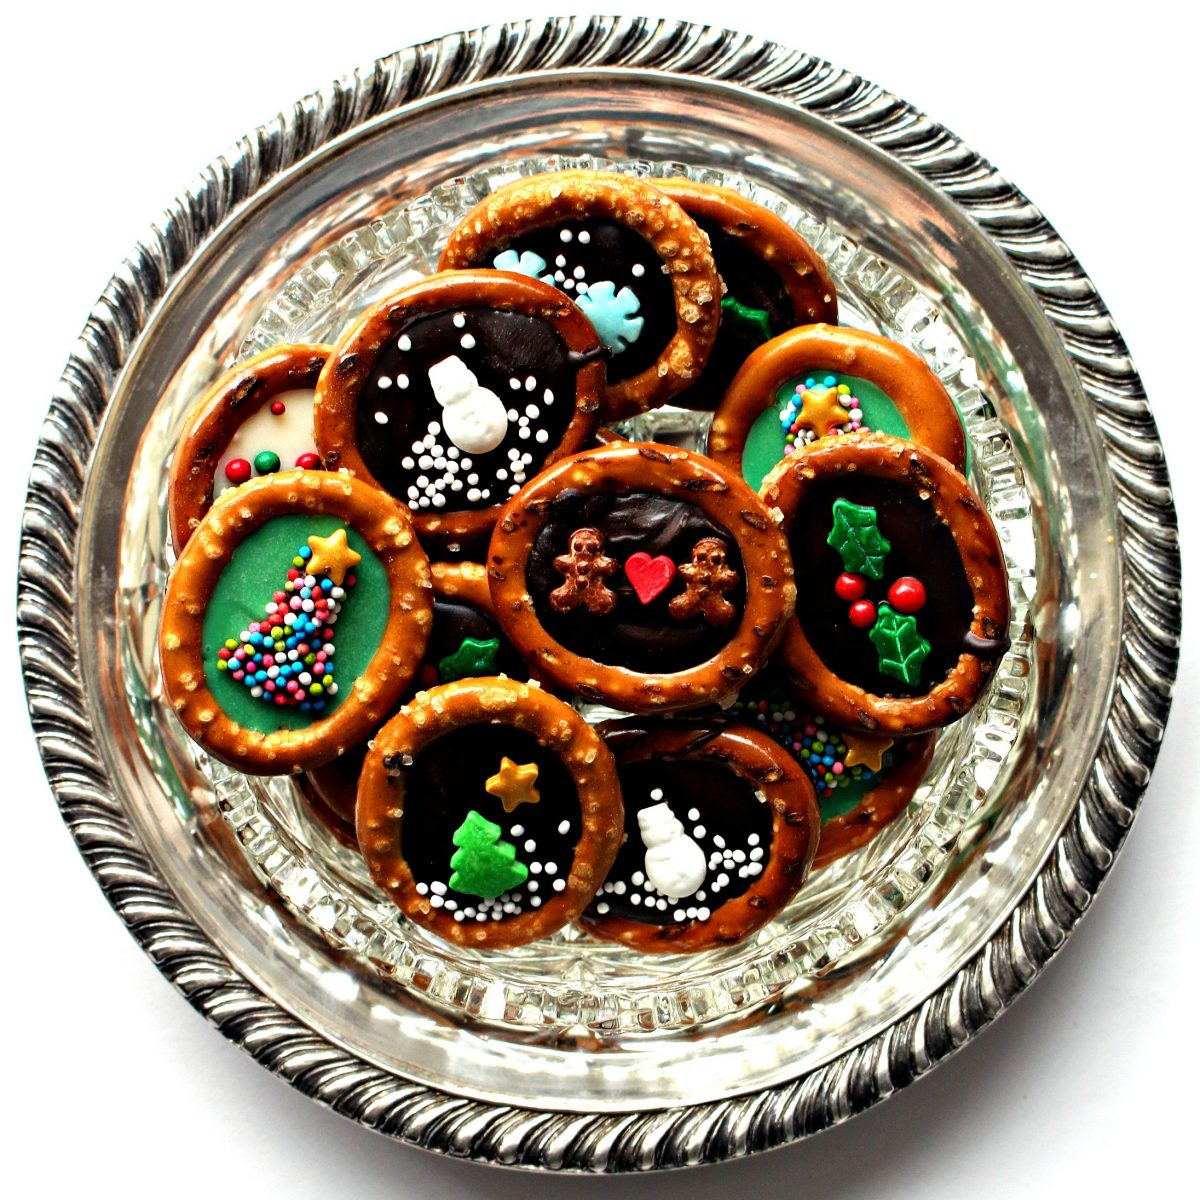 Pretzel rings with chocolate centers and sprinkle designs on a round silver platter.